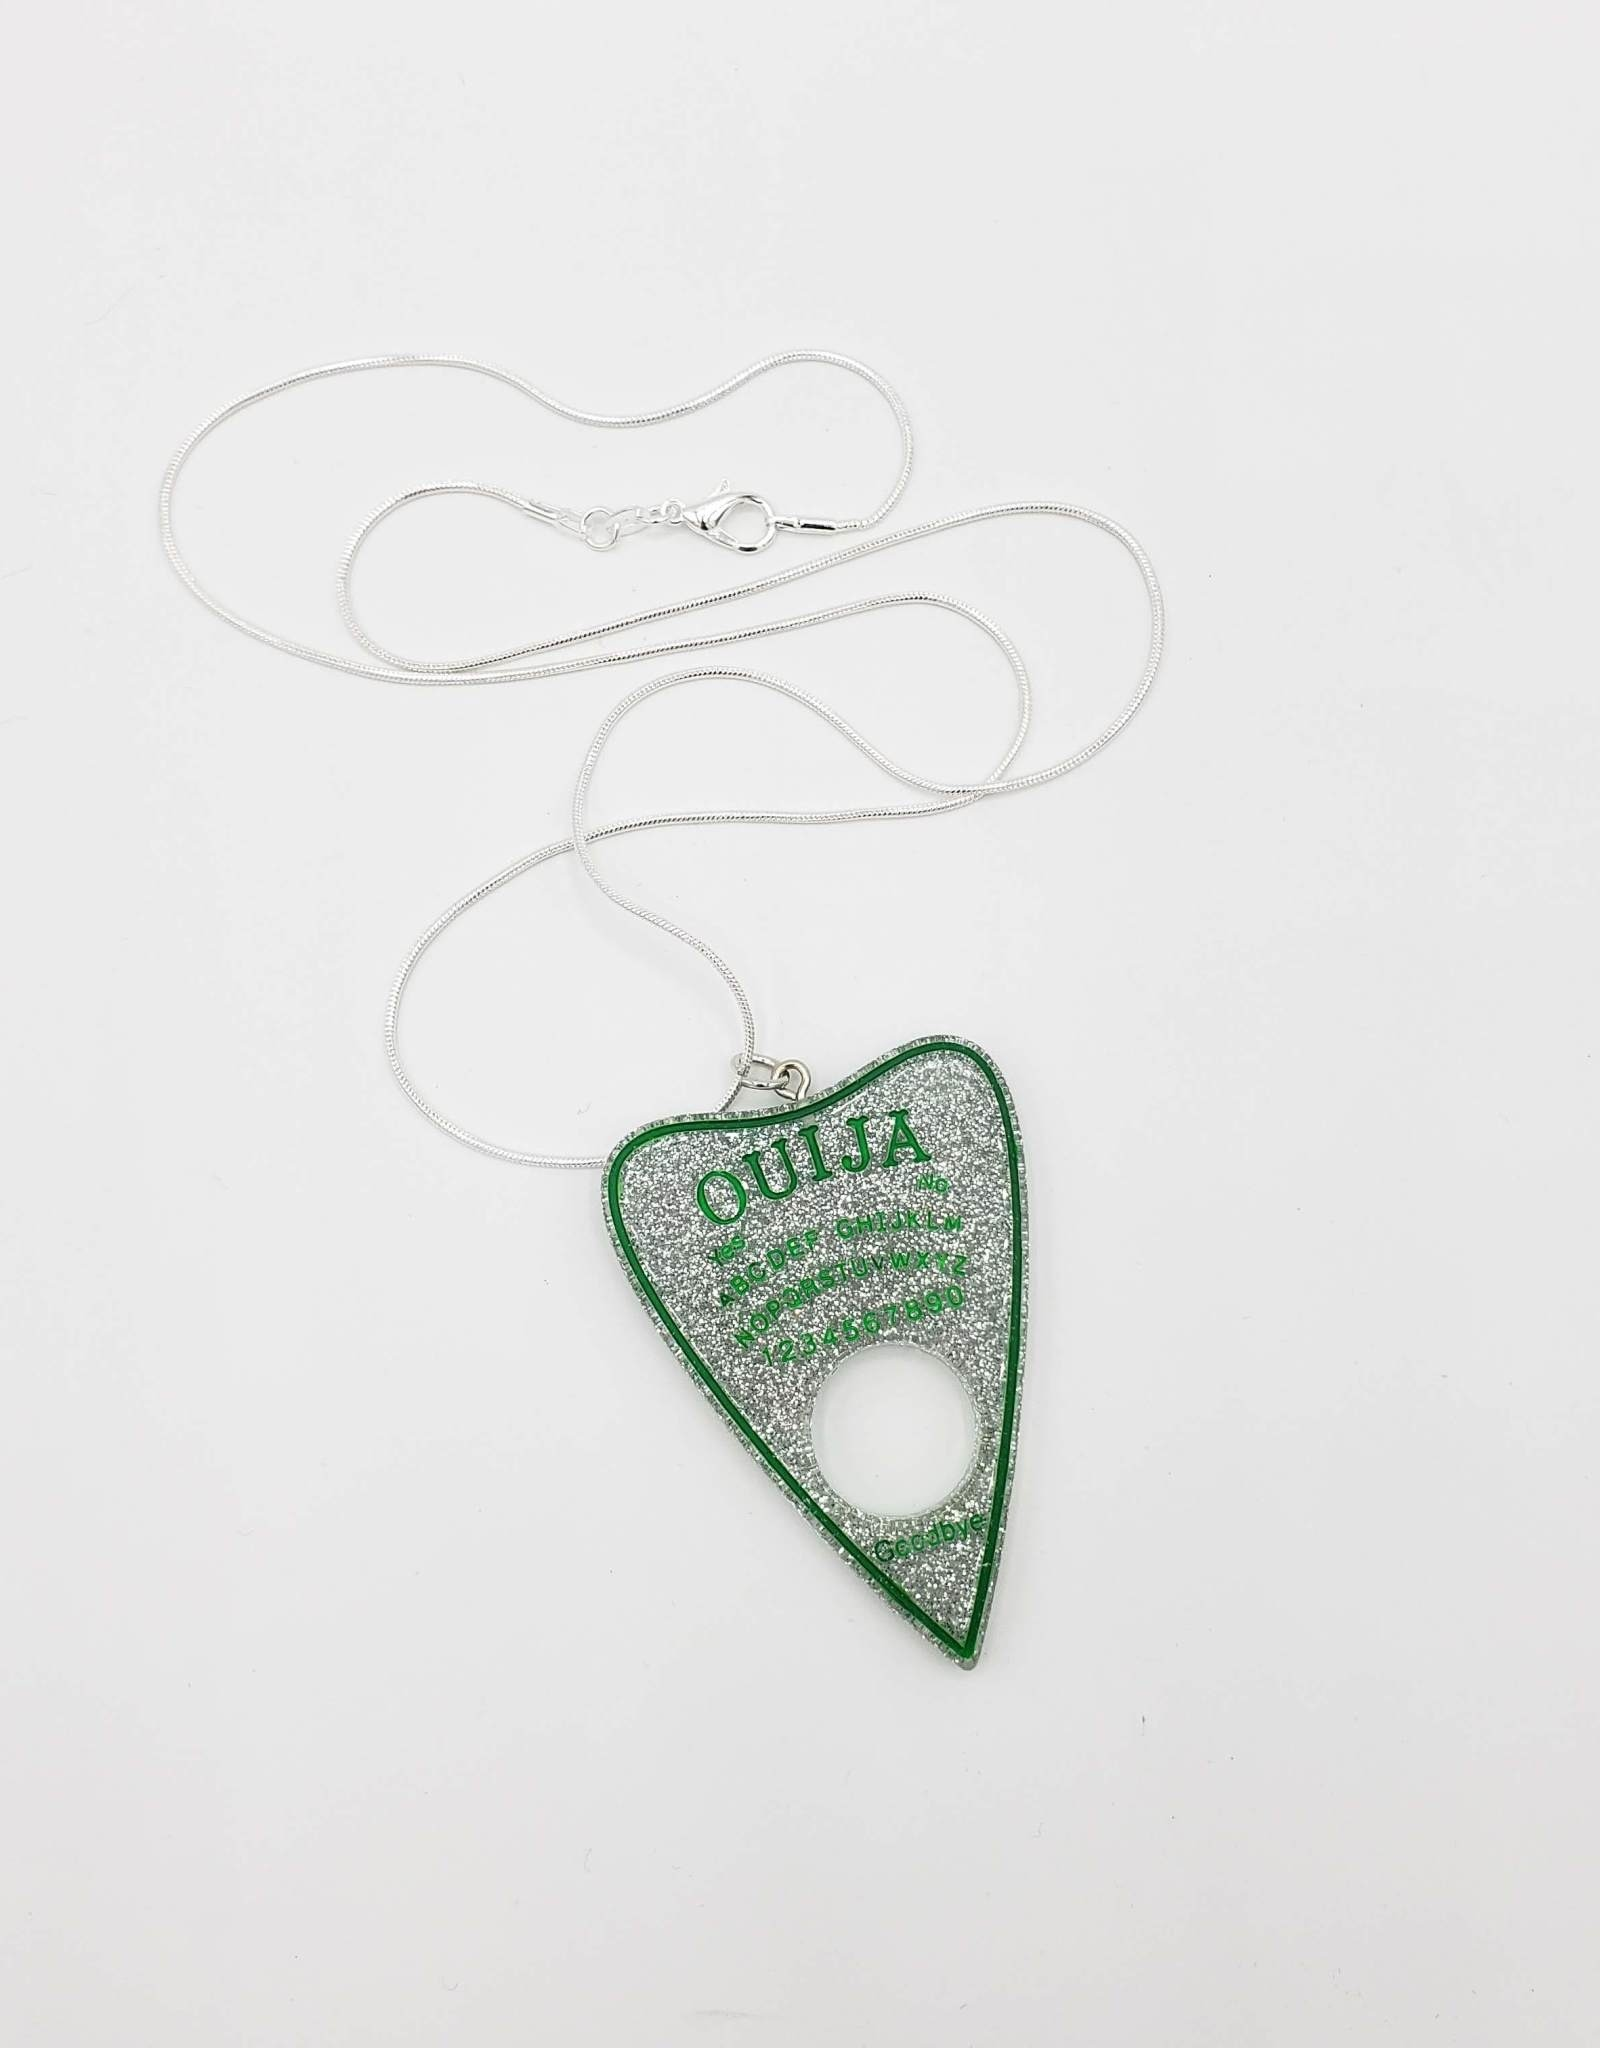 Planchette Pendant, Resin by Ink & Beats